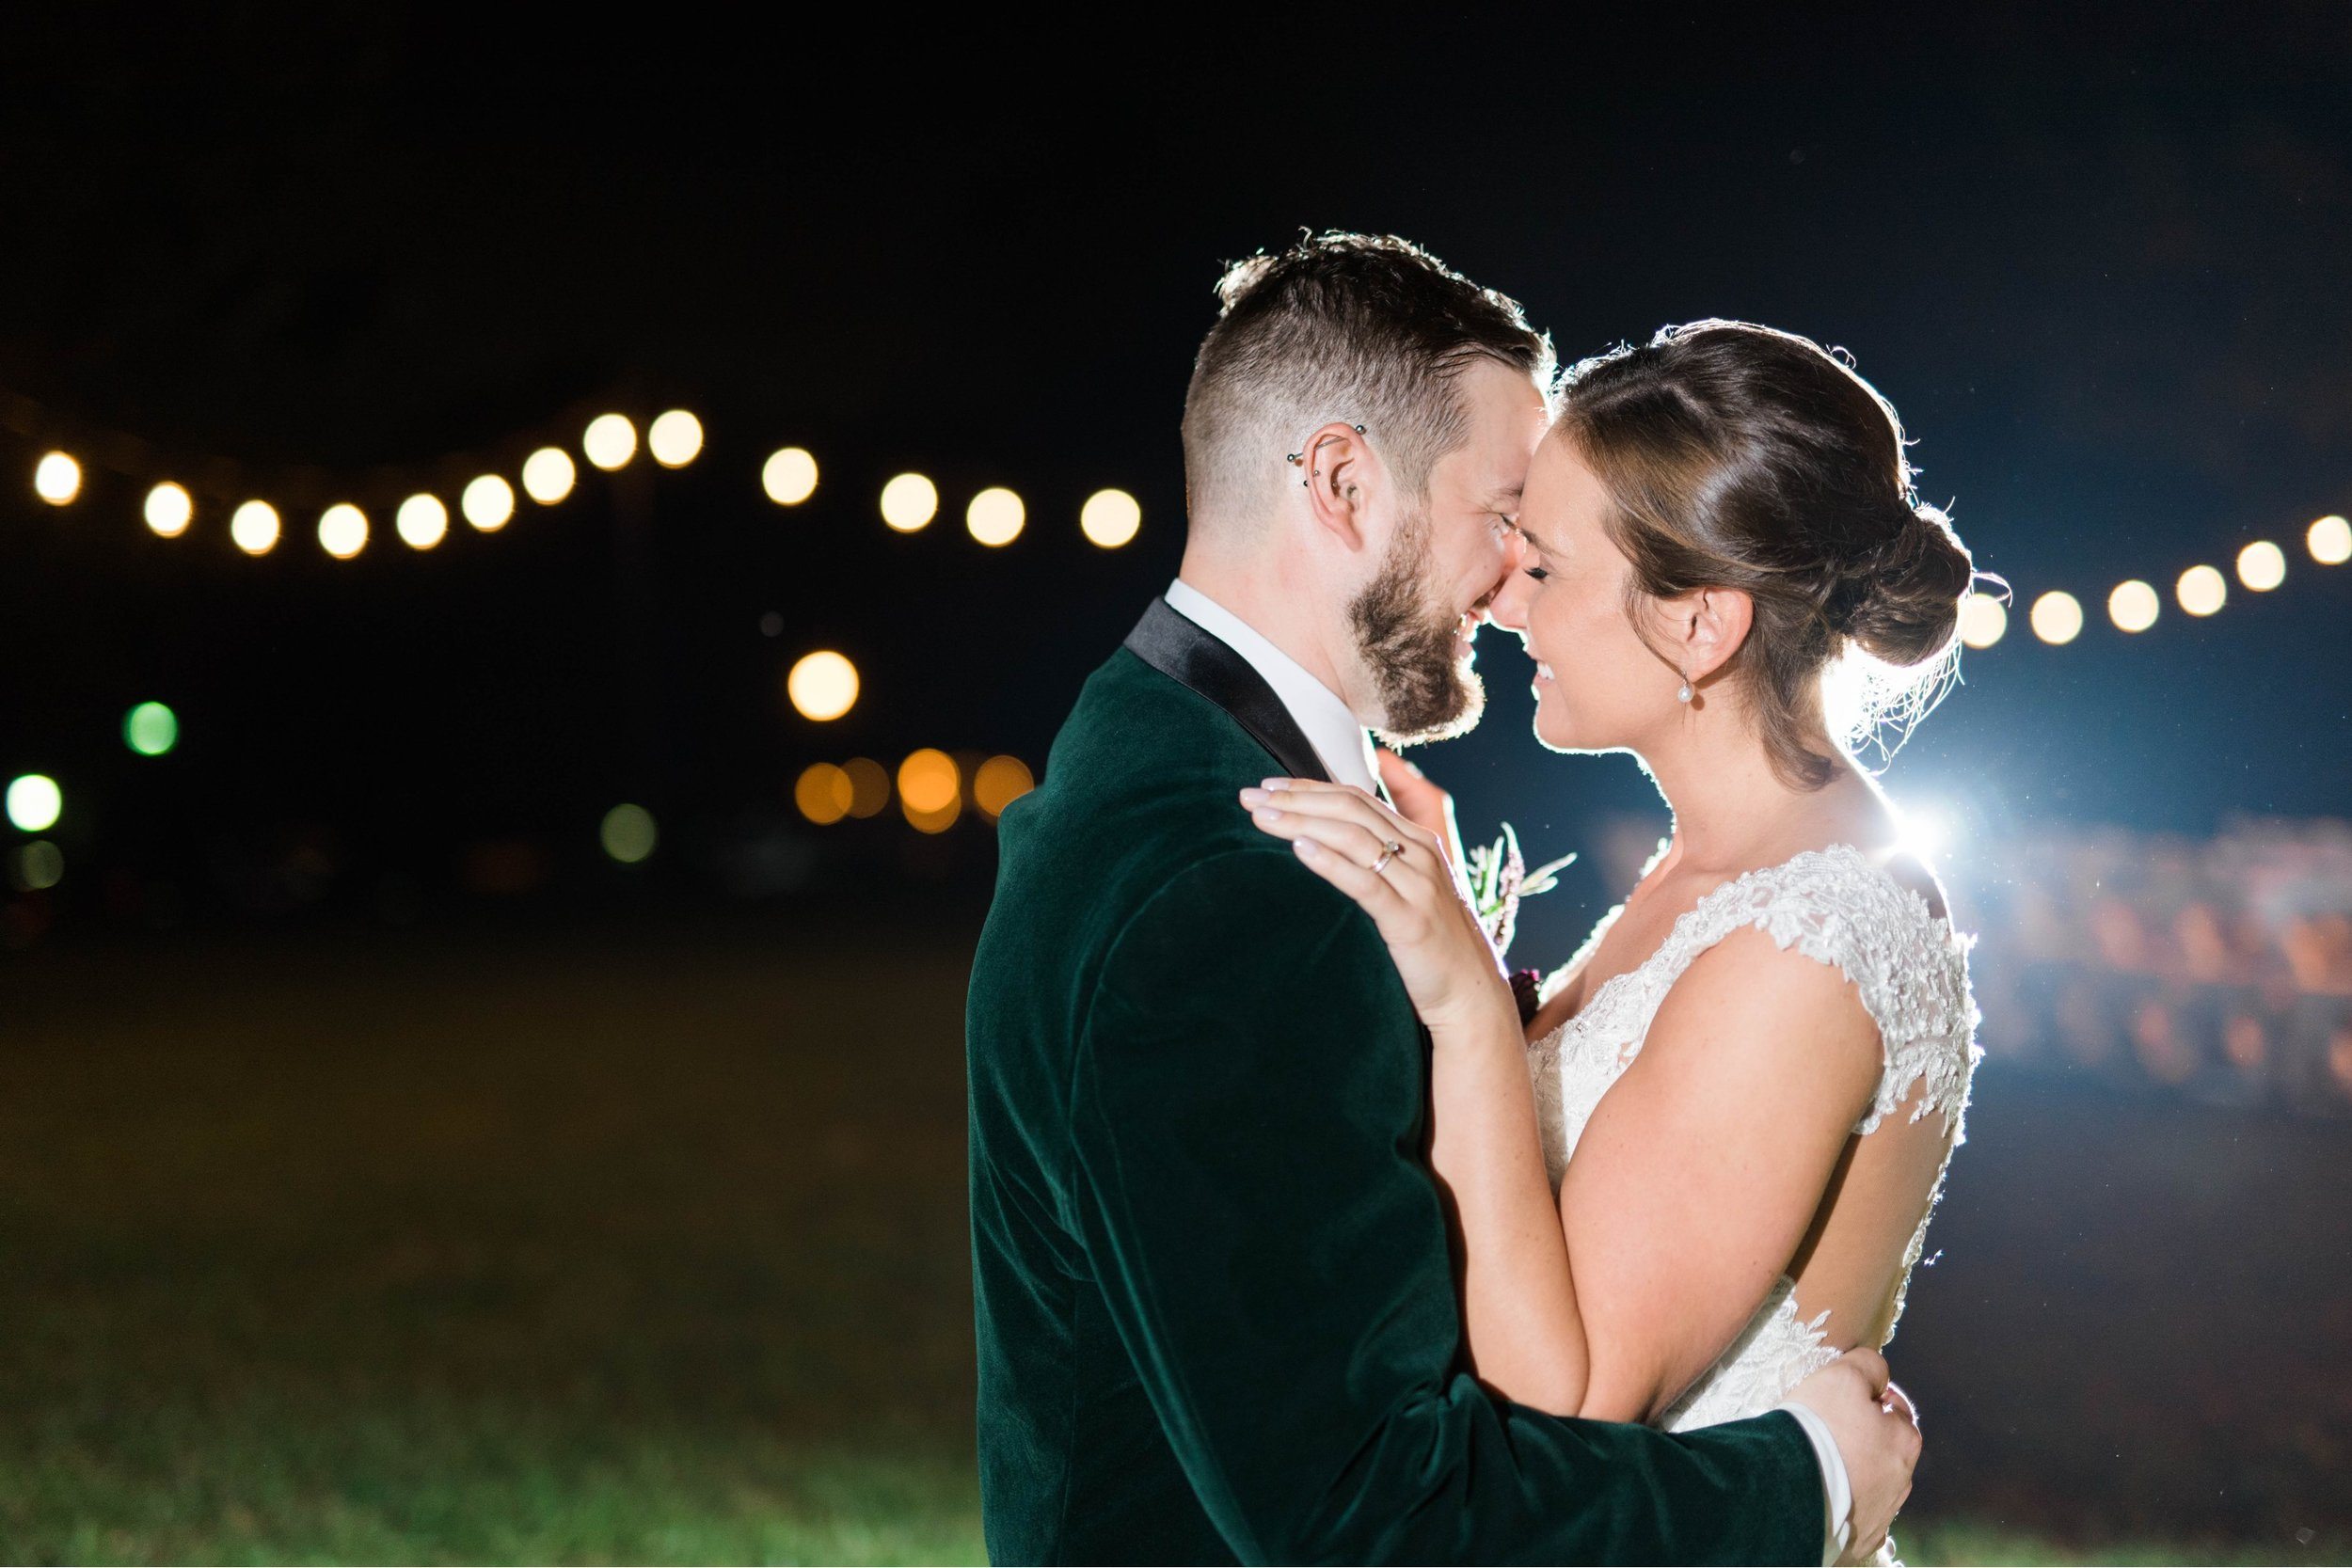 Gordan+Lauren_BoonsboroCountryClubWedding_Virginiaweddingphotographer_LynchburgVi 2.jpg